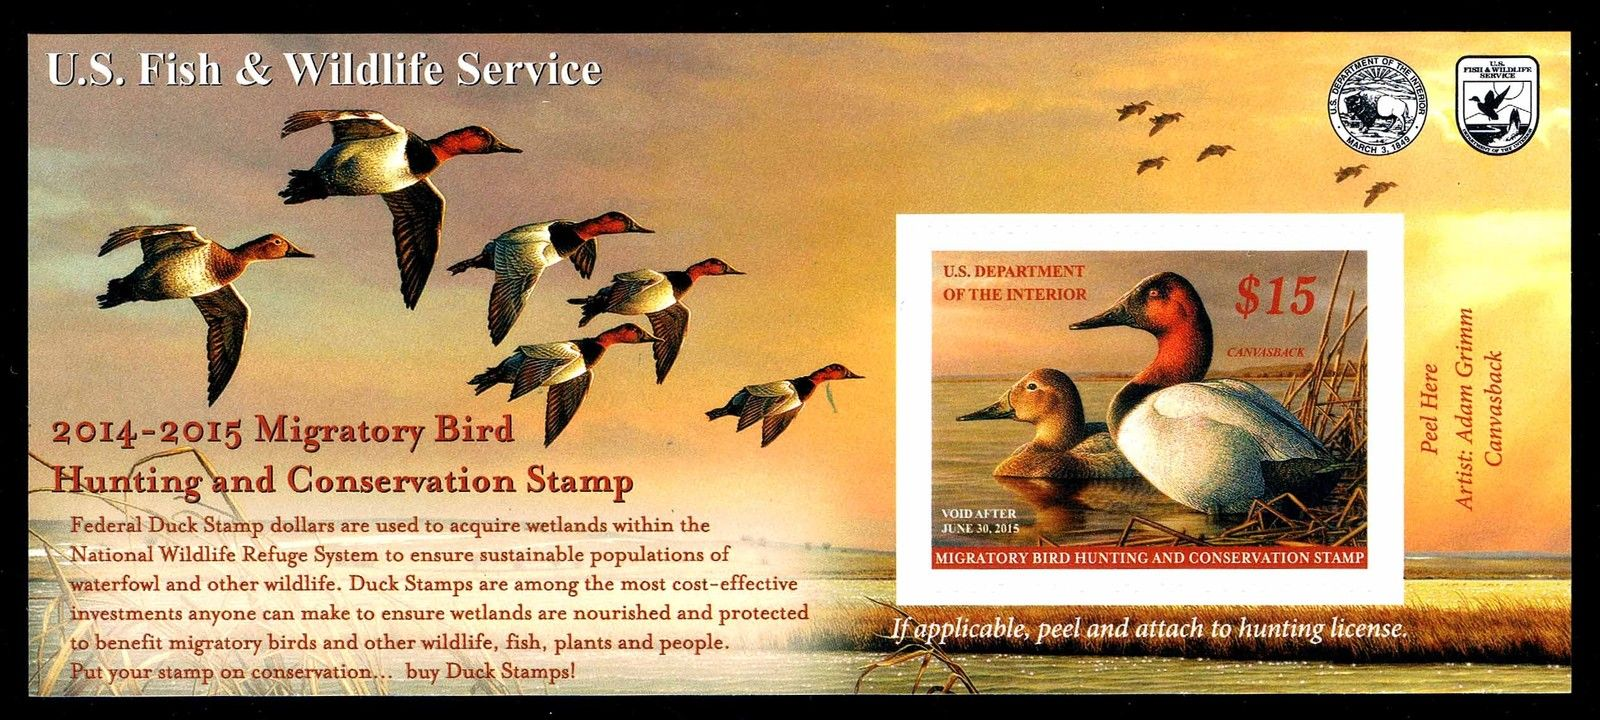 2014-2015 Federal Duck Stamp